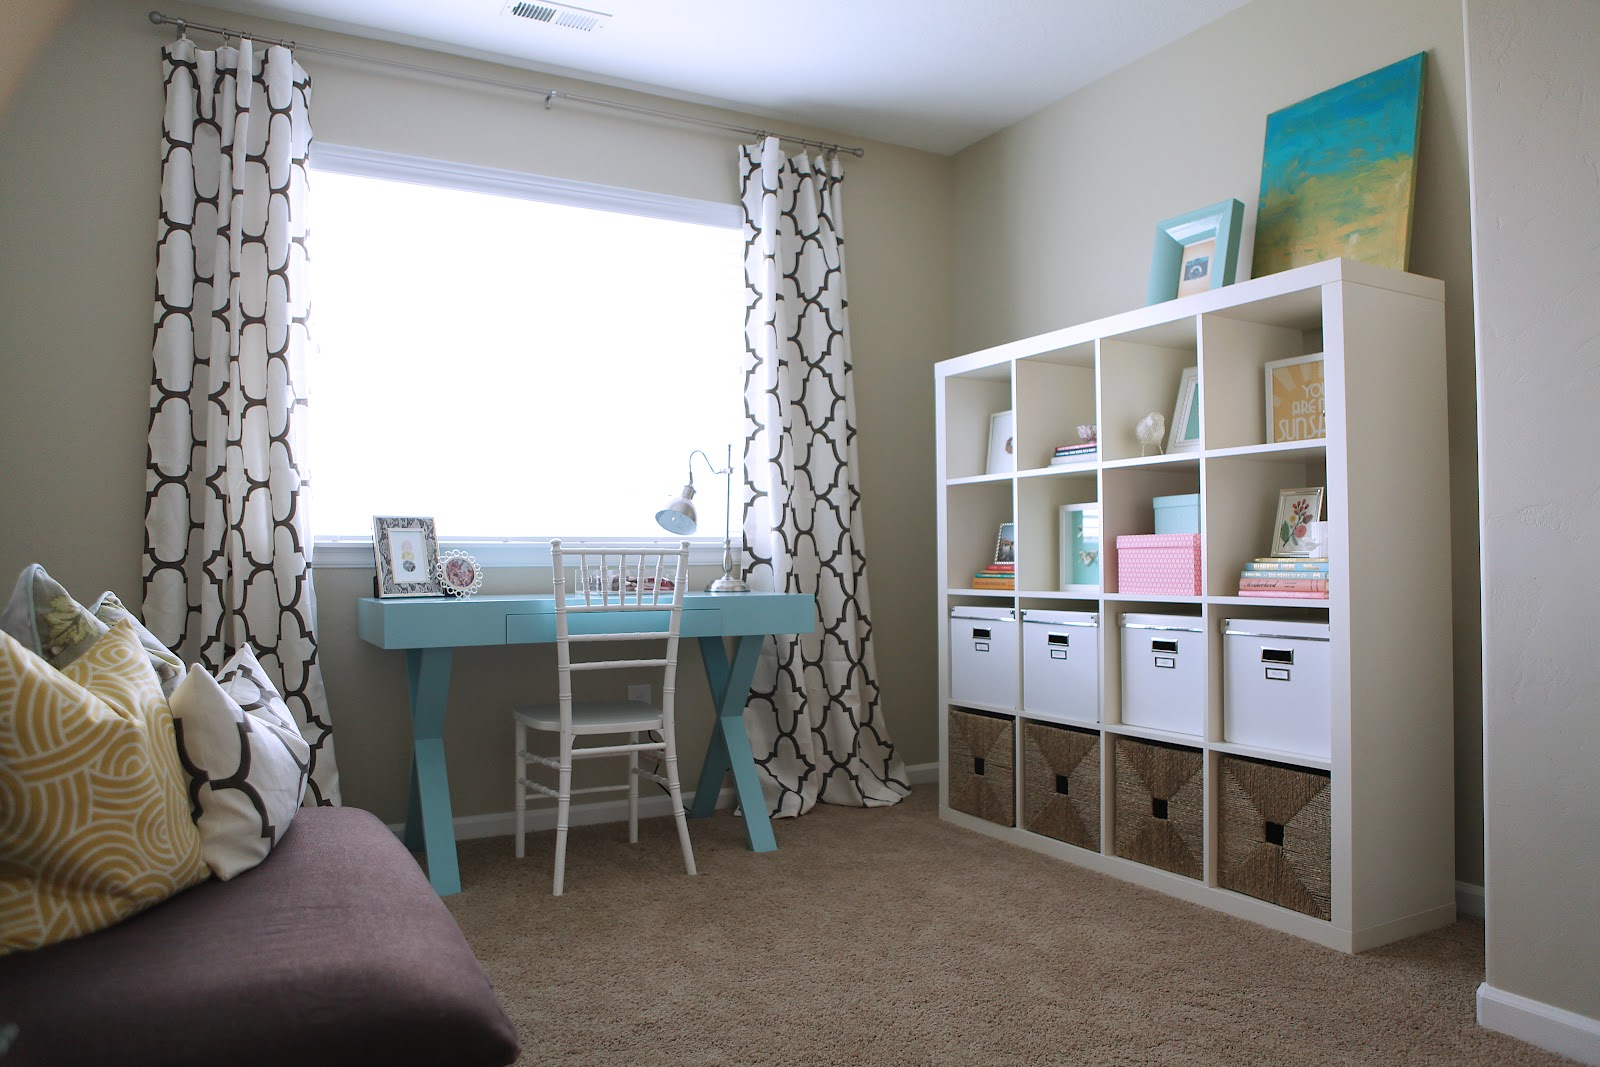 target blue chair kids tv chairs cresthaven office - house of jade interiors blog